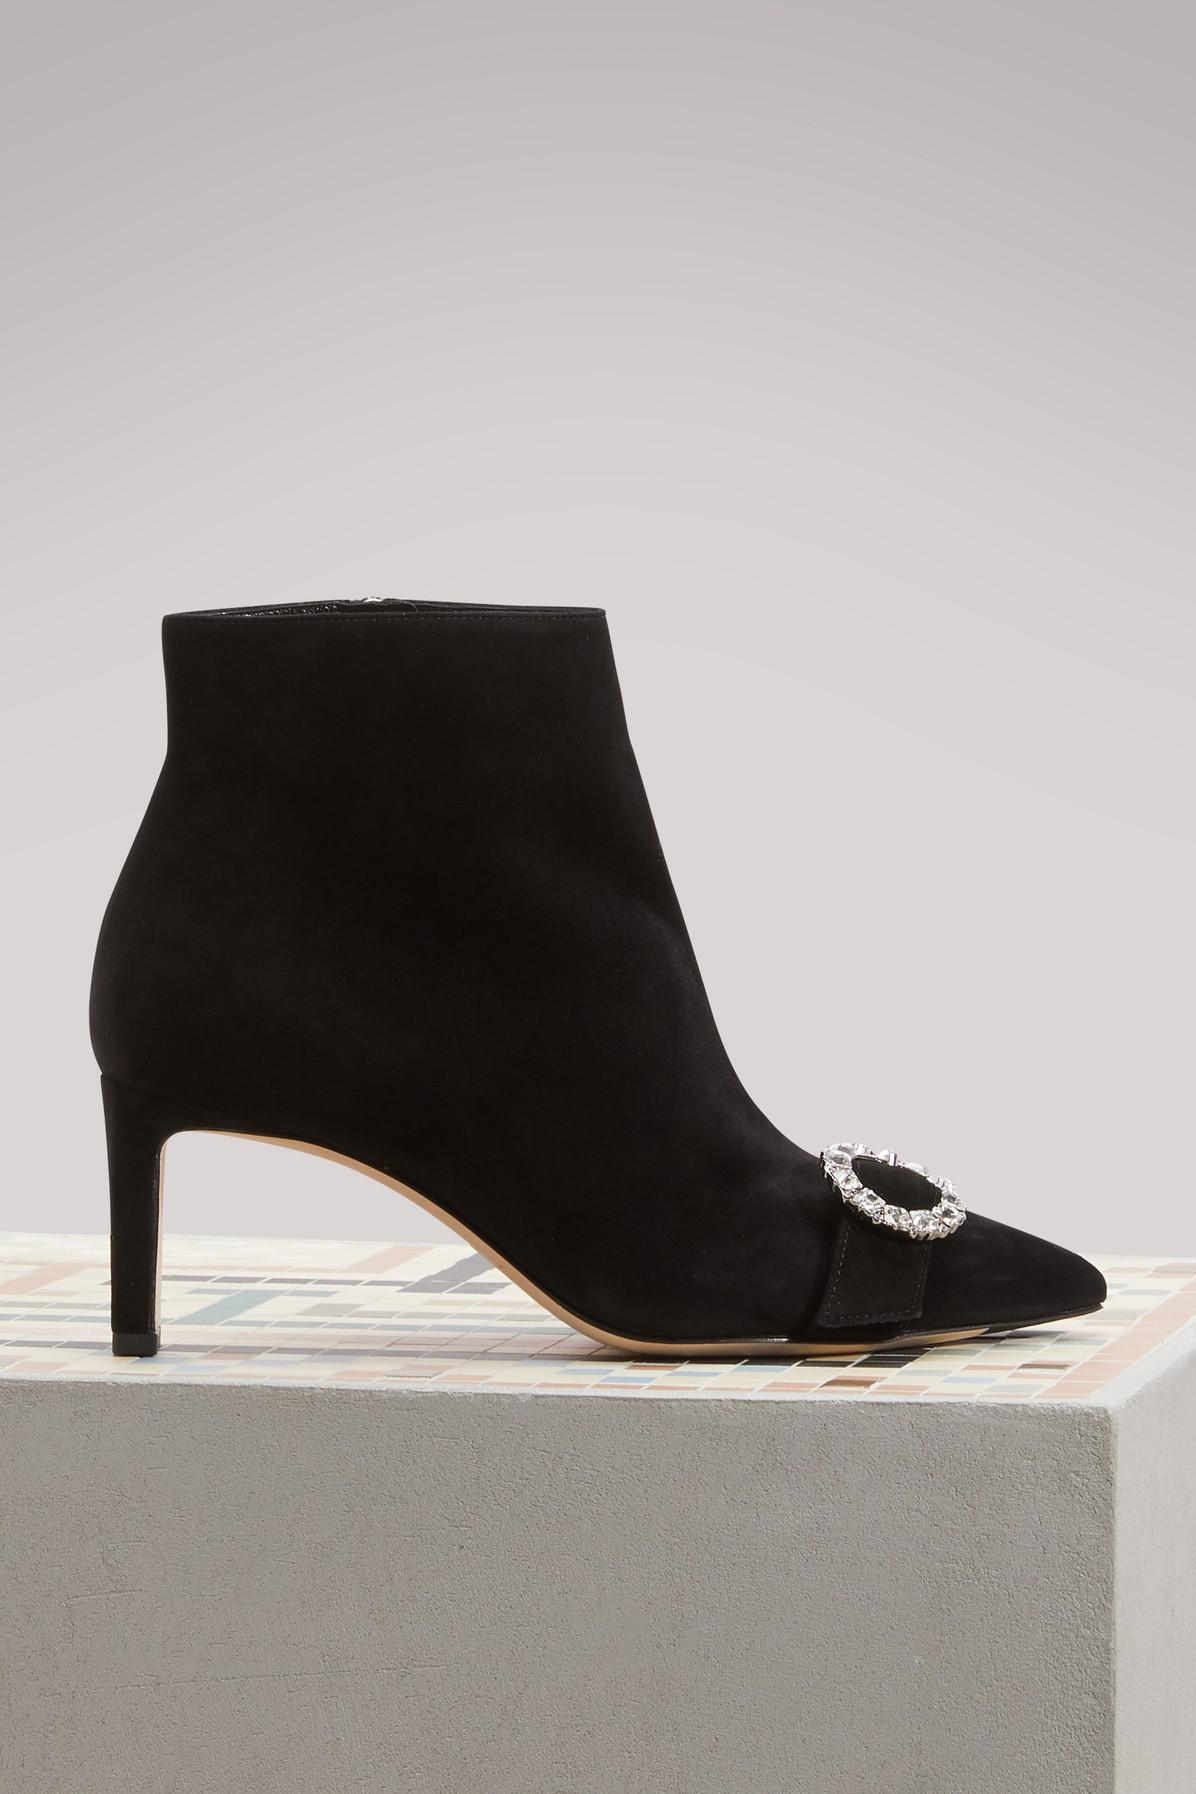 8f8ee8736493 Jimmy Choo Hanover 65 Ankle Boots in Black - Lyst